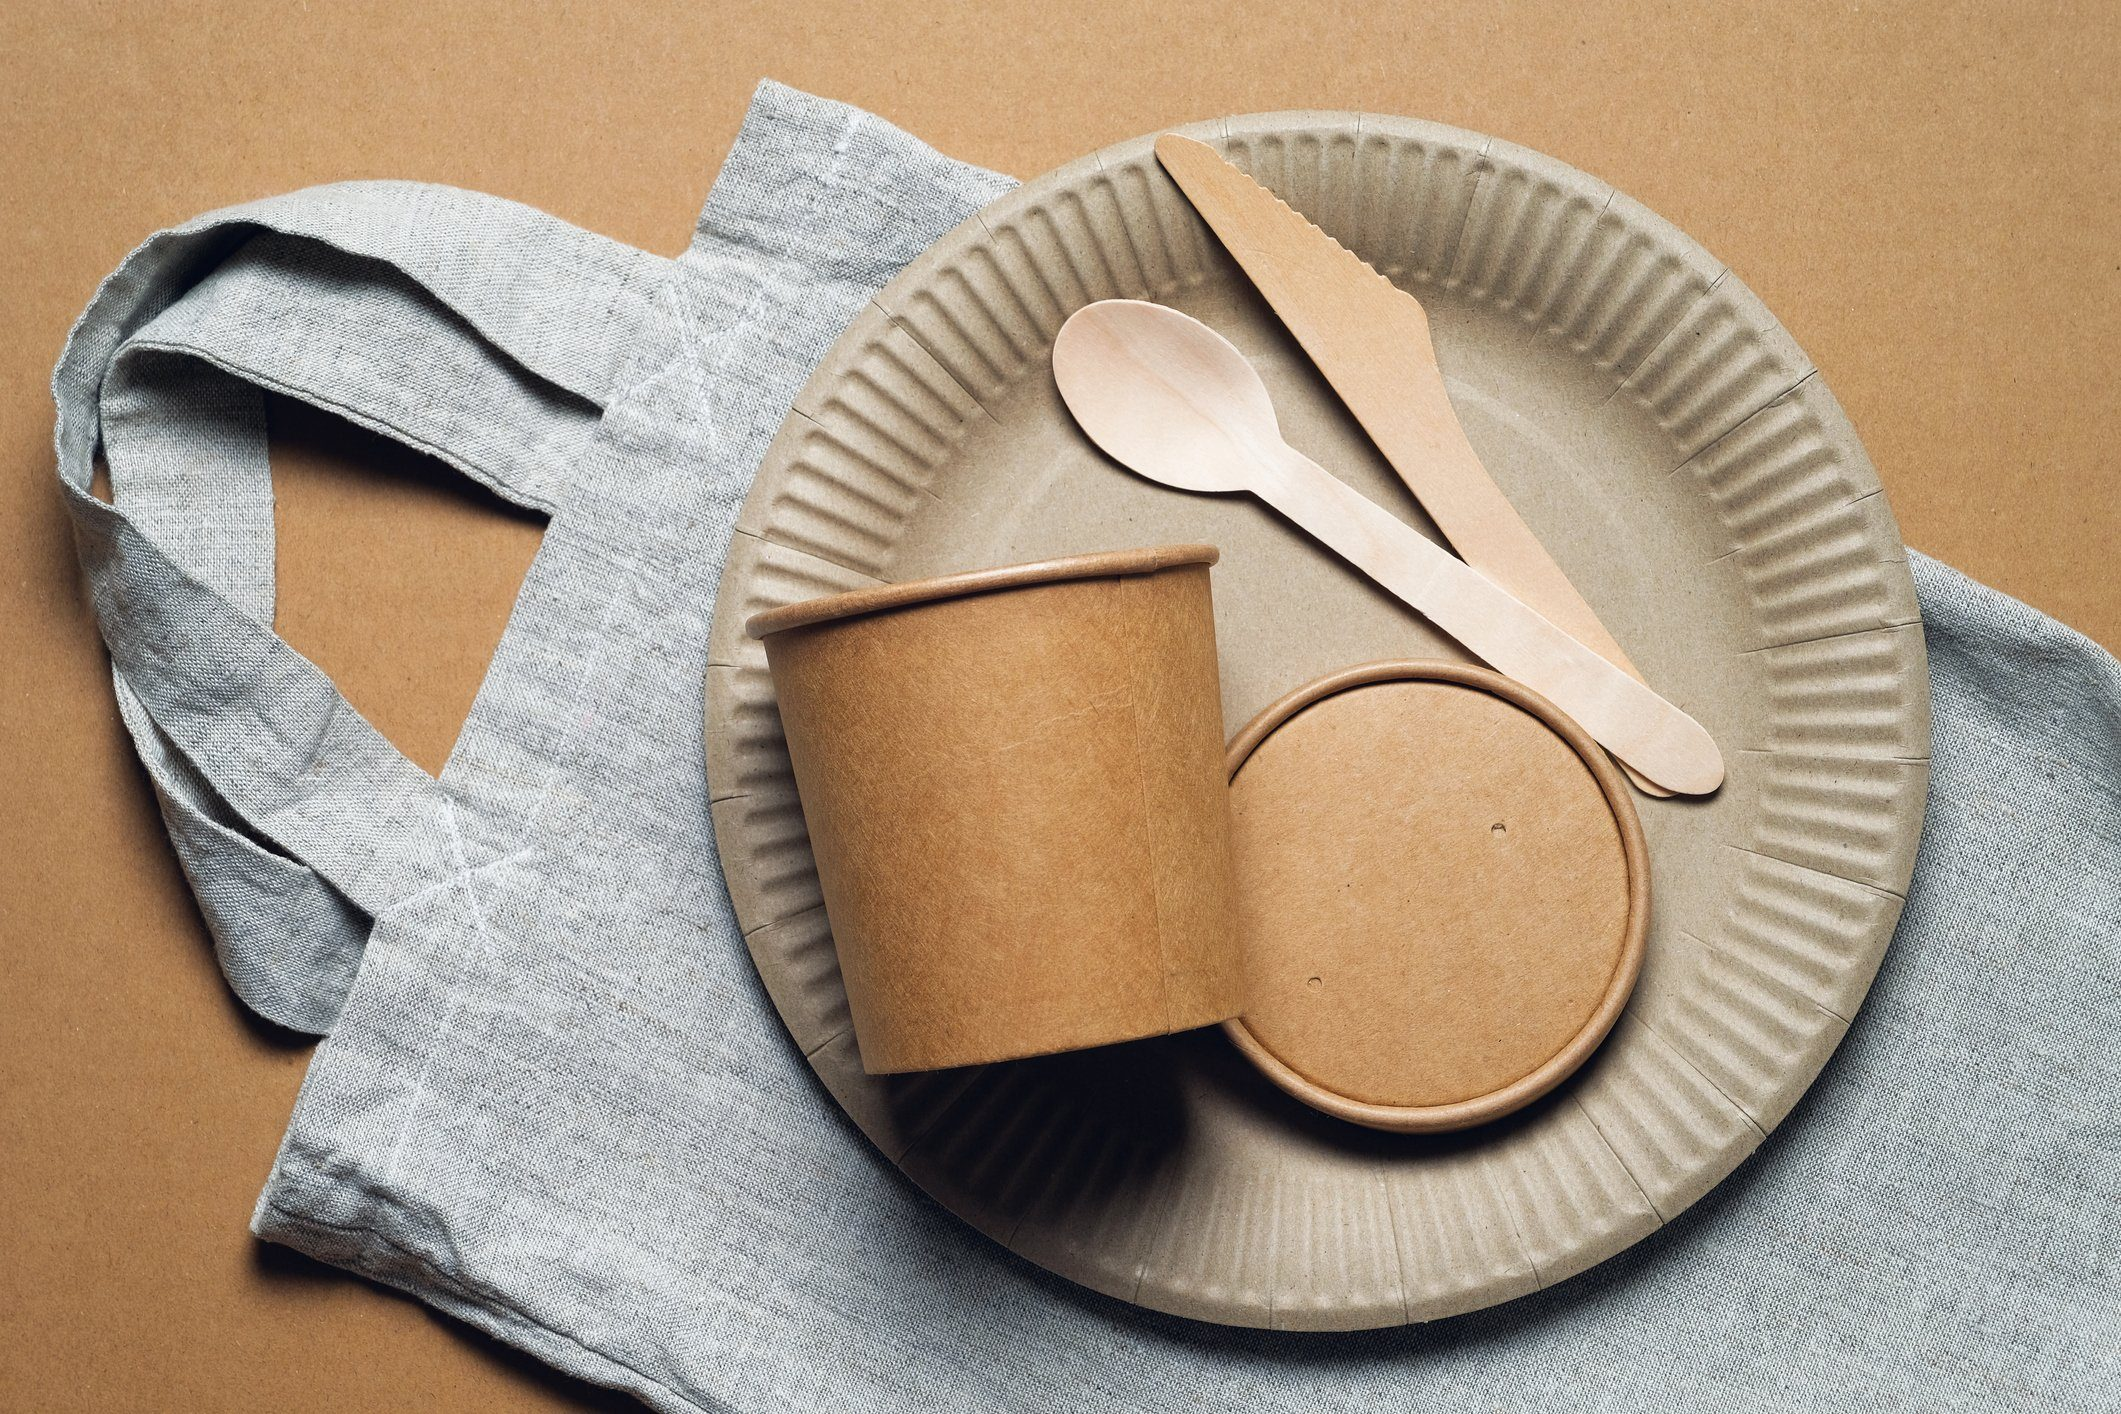 Disposable eco-friendly tableware, reusable bag-string bag on a cardboard background. Secondary use. No plastic. Environmental protection.